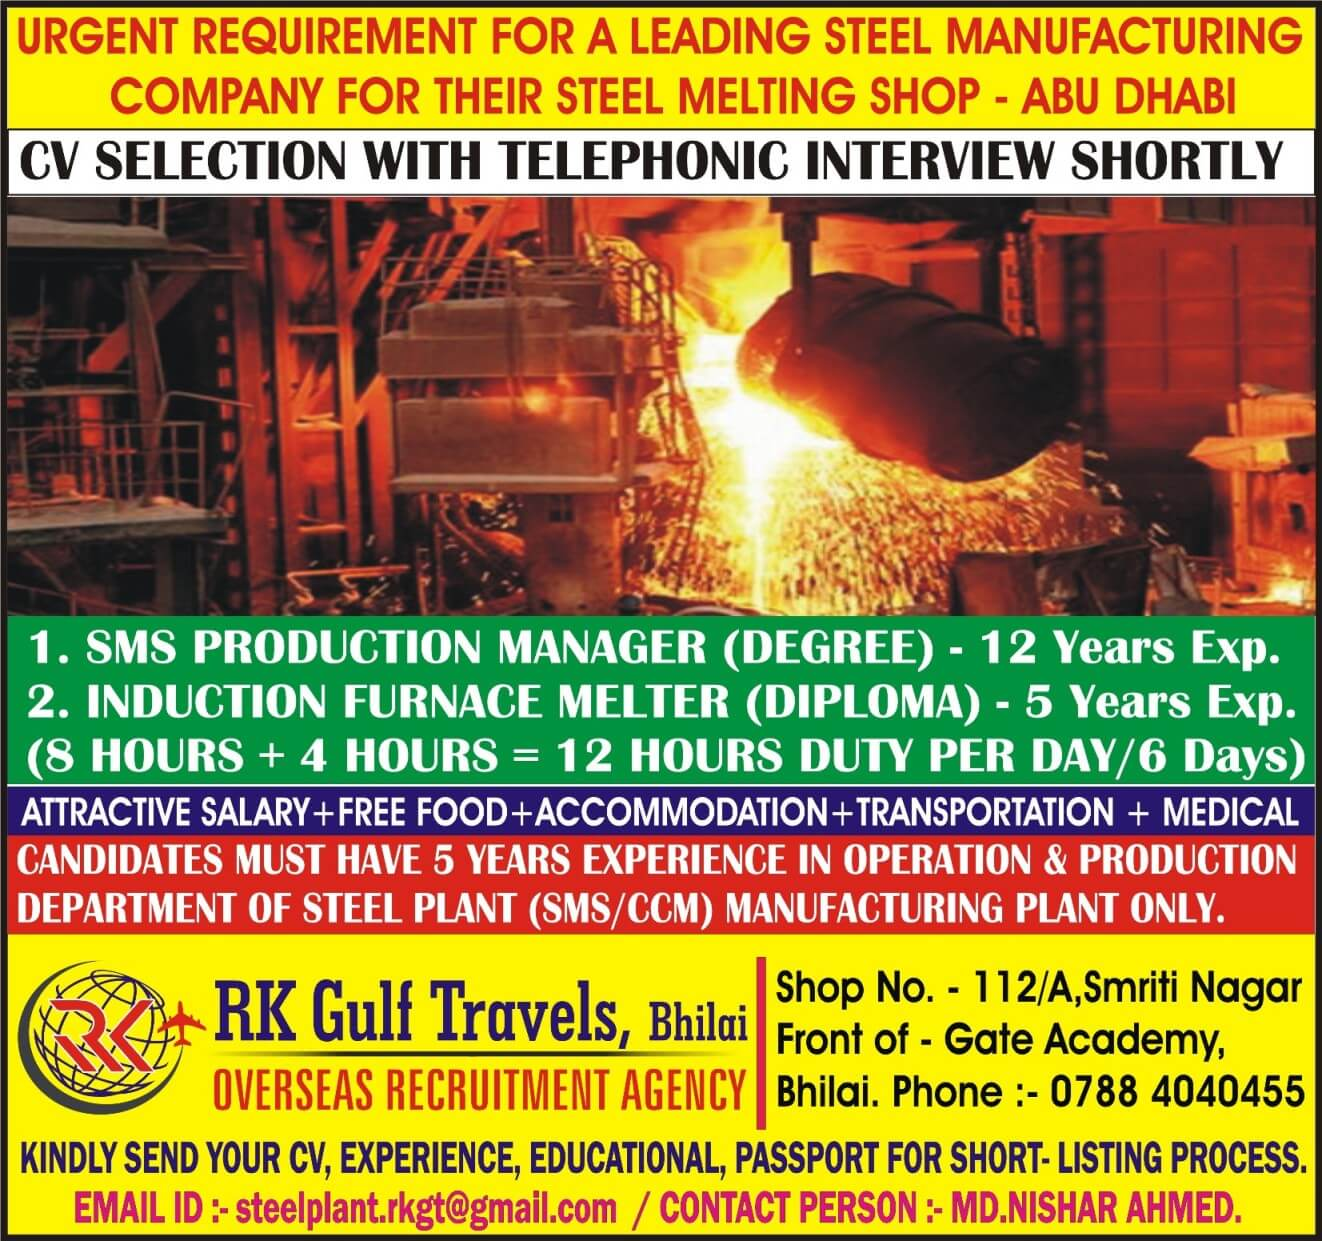 LEADING STEEL MANUFACTURING PLANT (SMS/CCM) - ABU DHABI